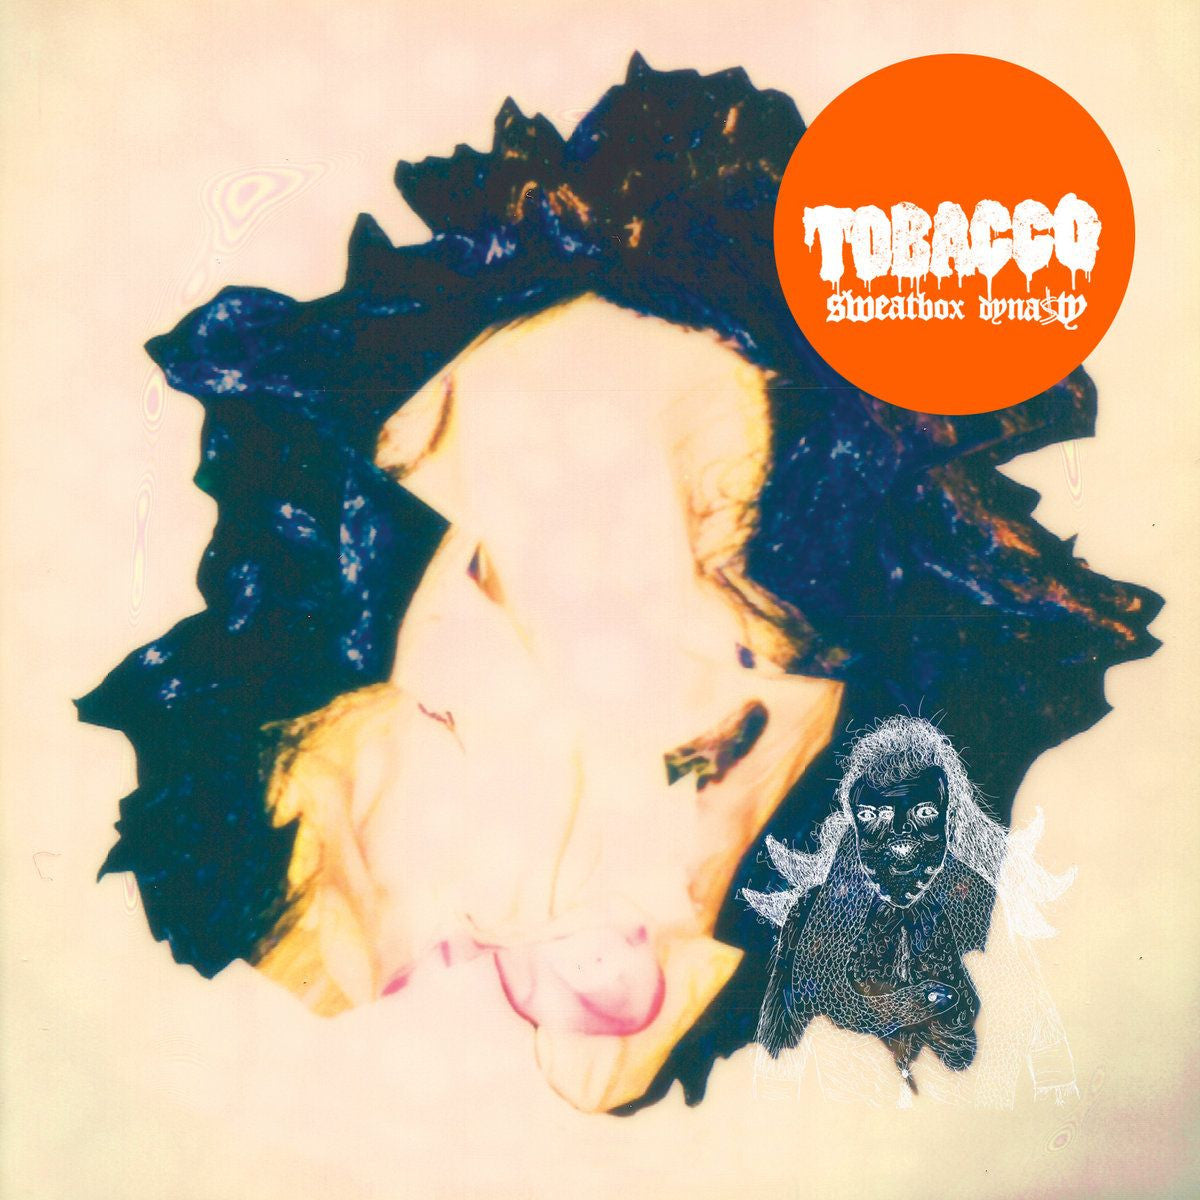 Tobacco – Sweatbox Dynasty  (Transparent Blue/Beige Vinyl)